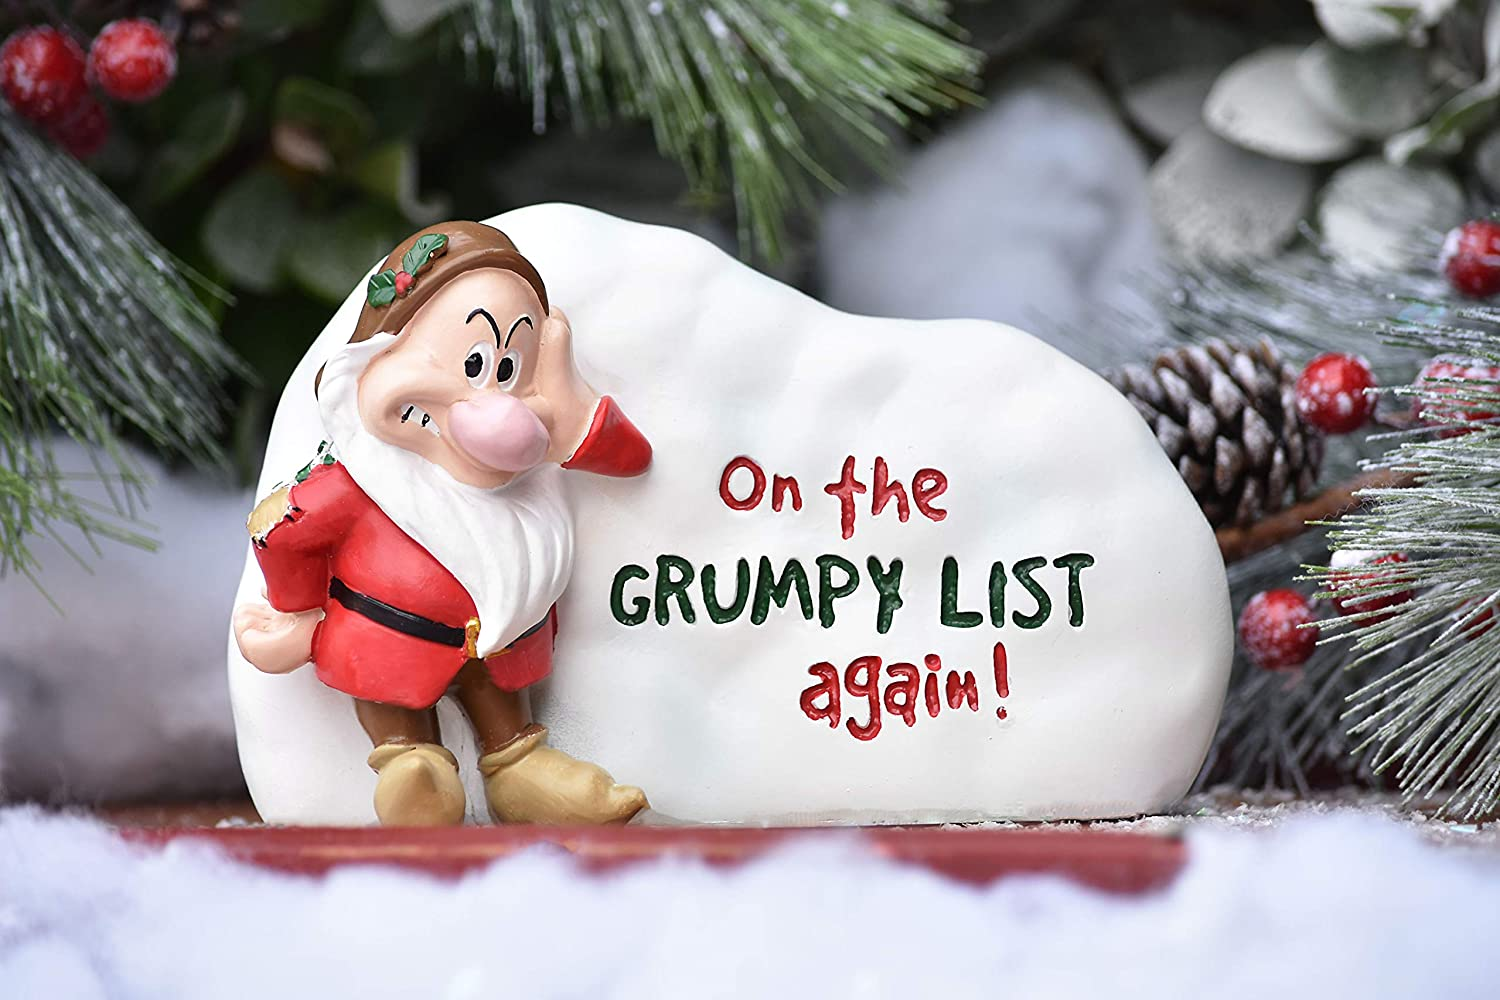 The Galway Company Disney Grumpy of Snow White and the Seven Dwarfs Garden Rock. Outdoor Garden Statue, Classic Disney Collection, 5 Inches Tall x 8 Inches Long, Hand-Painted, Official Disney Licensed